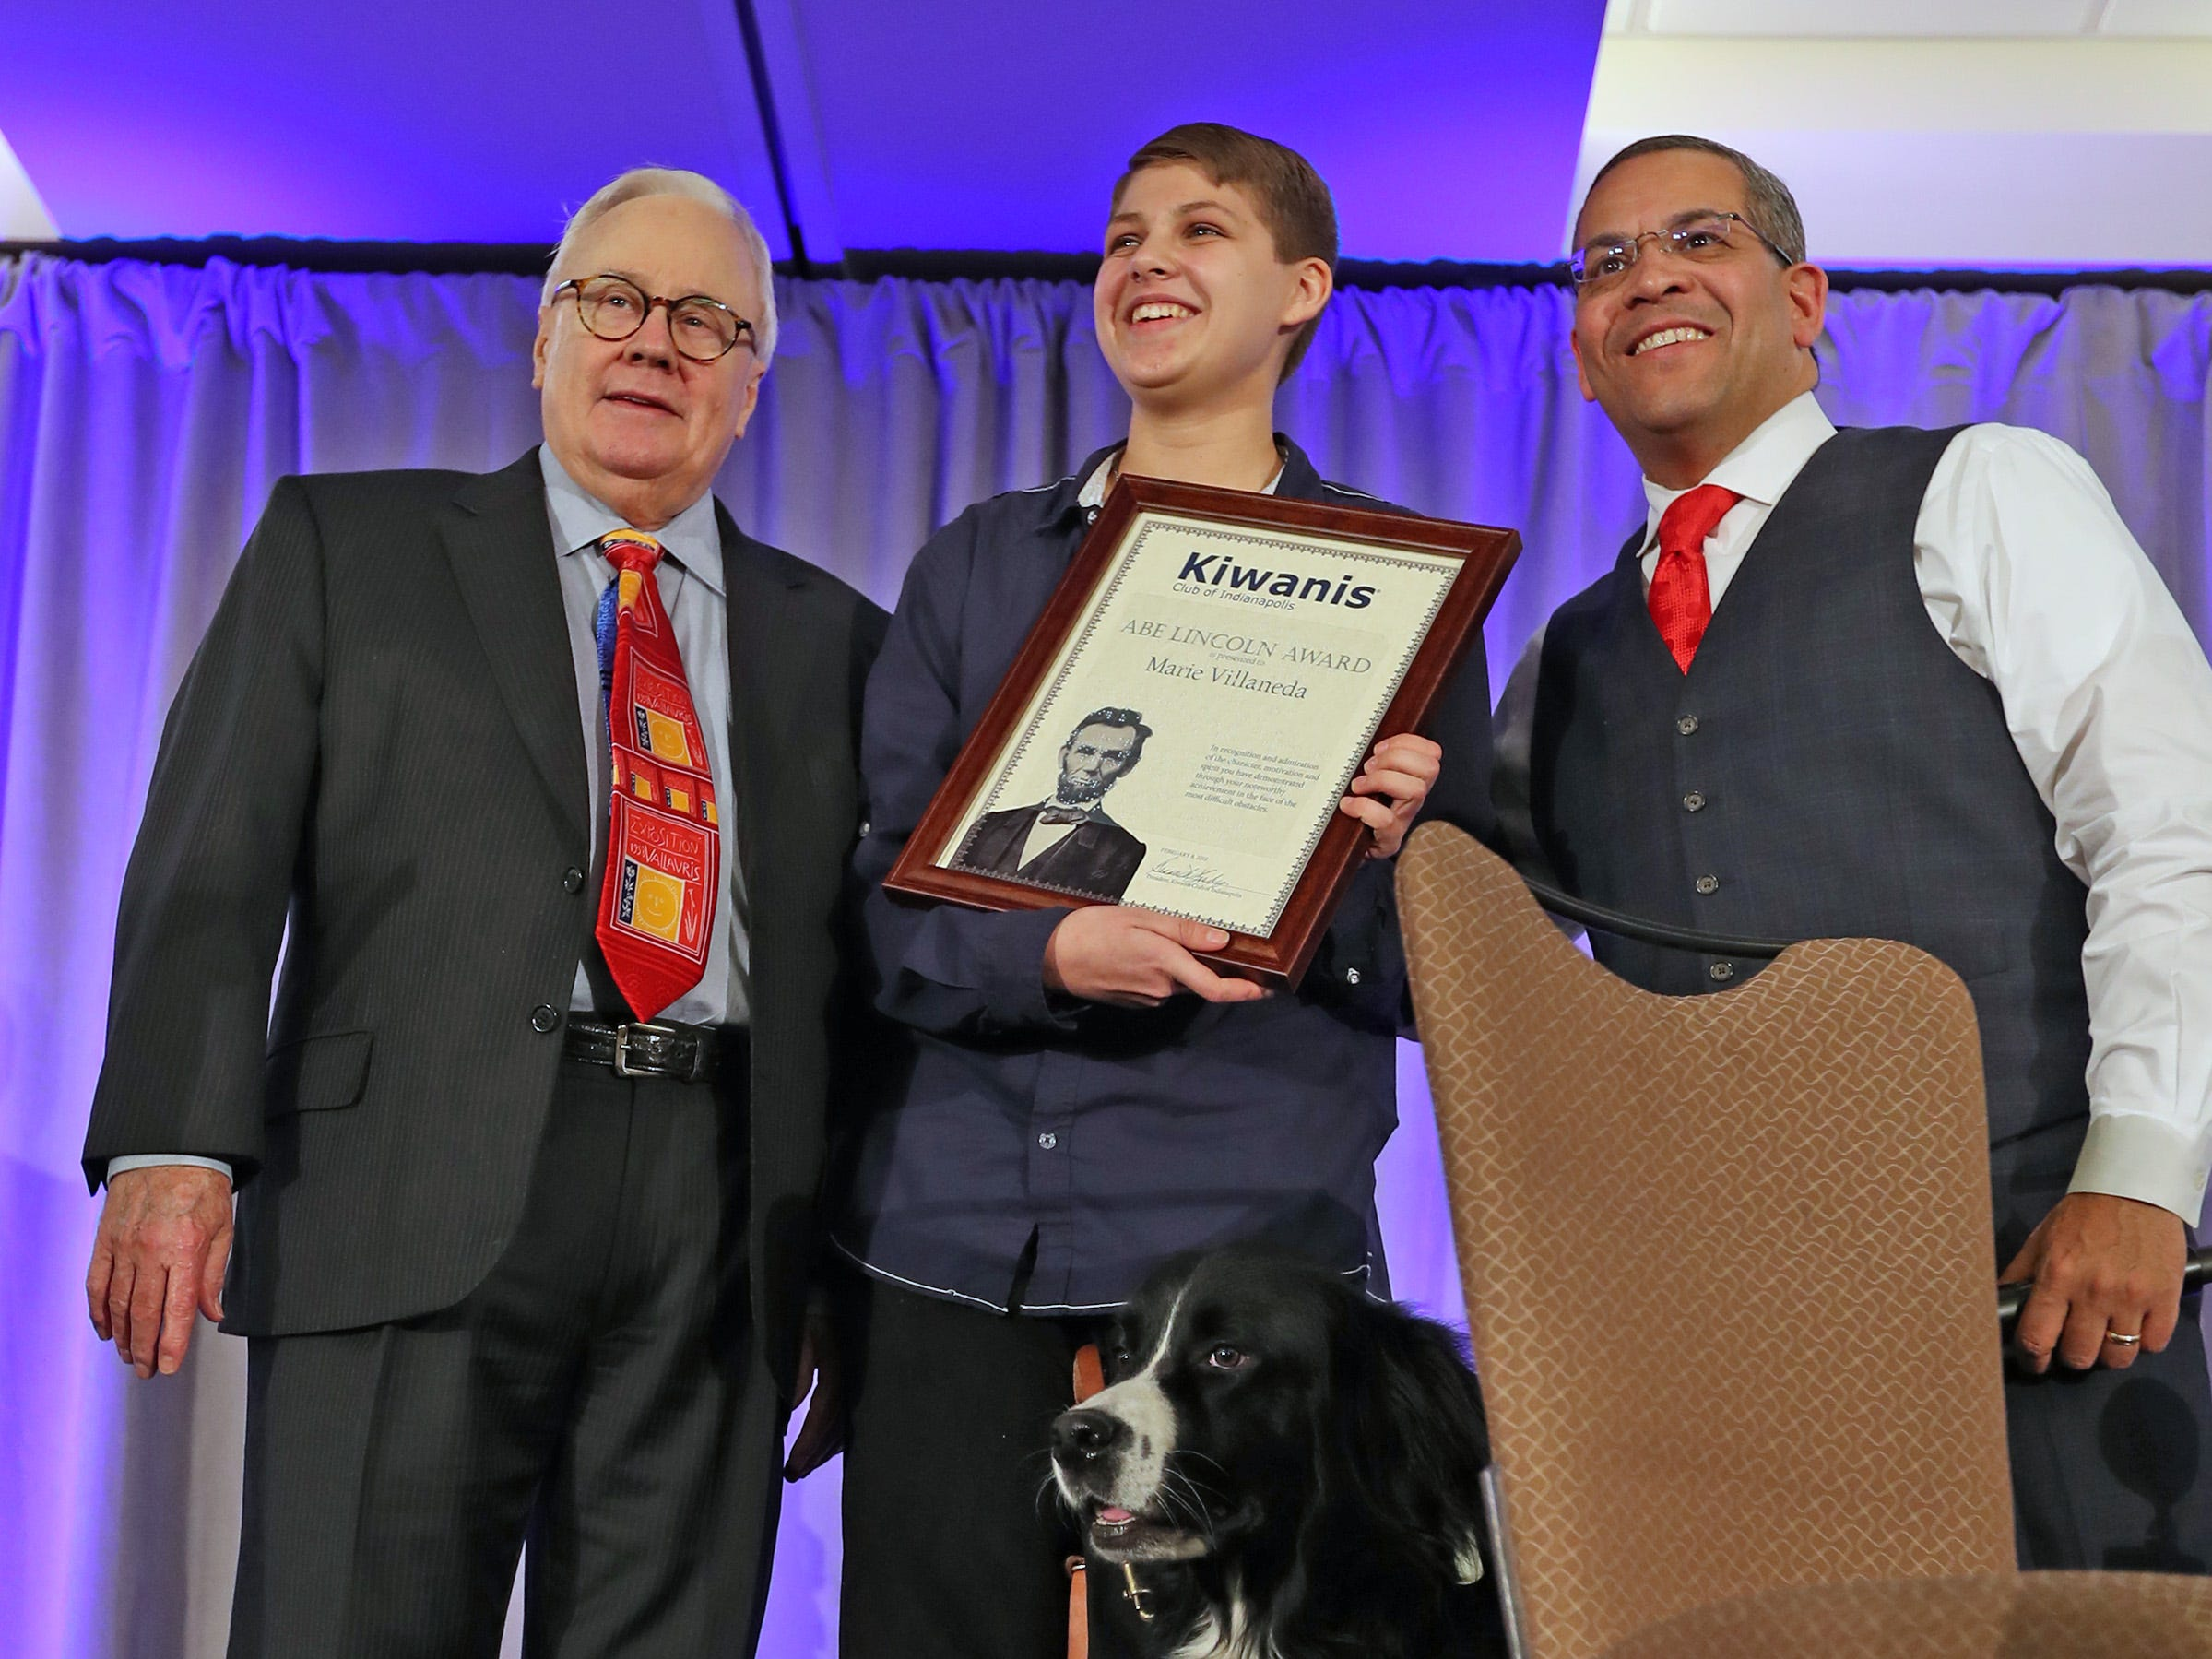 Marie Villaneda, center, is presented the 3rd Place Scholarship award at the 44th Annual Abe Lincoln Awards Program, Friday, Feb. 8, 2019. The Indiana School for the Blind & Visually Impaired student stands with Chic Born, left, Rafael Sanchez, right, and her service dog, Bear.  The Kiwanis Club of Indianapolis program was held at Ivy Tech Community College.  20 high school student were honored at the annual event which celebrates overcoming adversity in life to succeed.  Four of the 20 students were given scholarships.